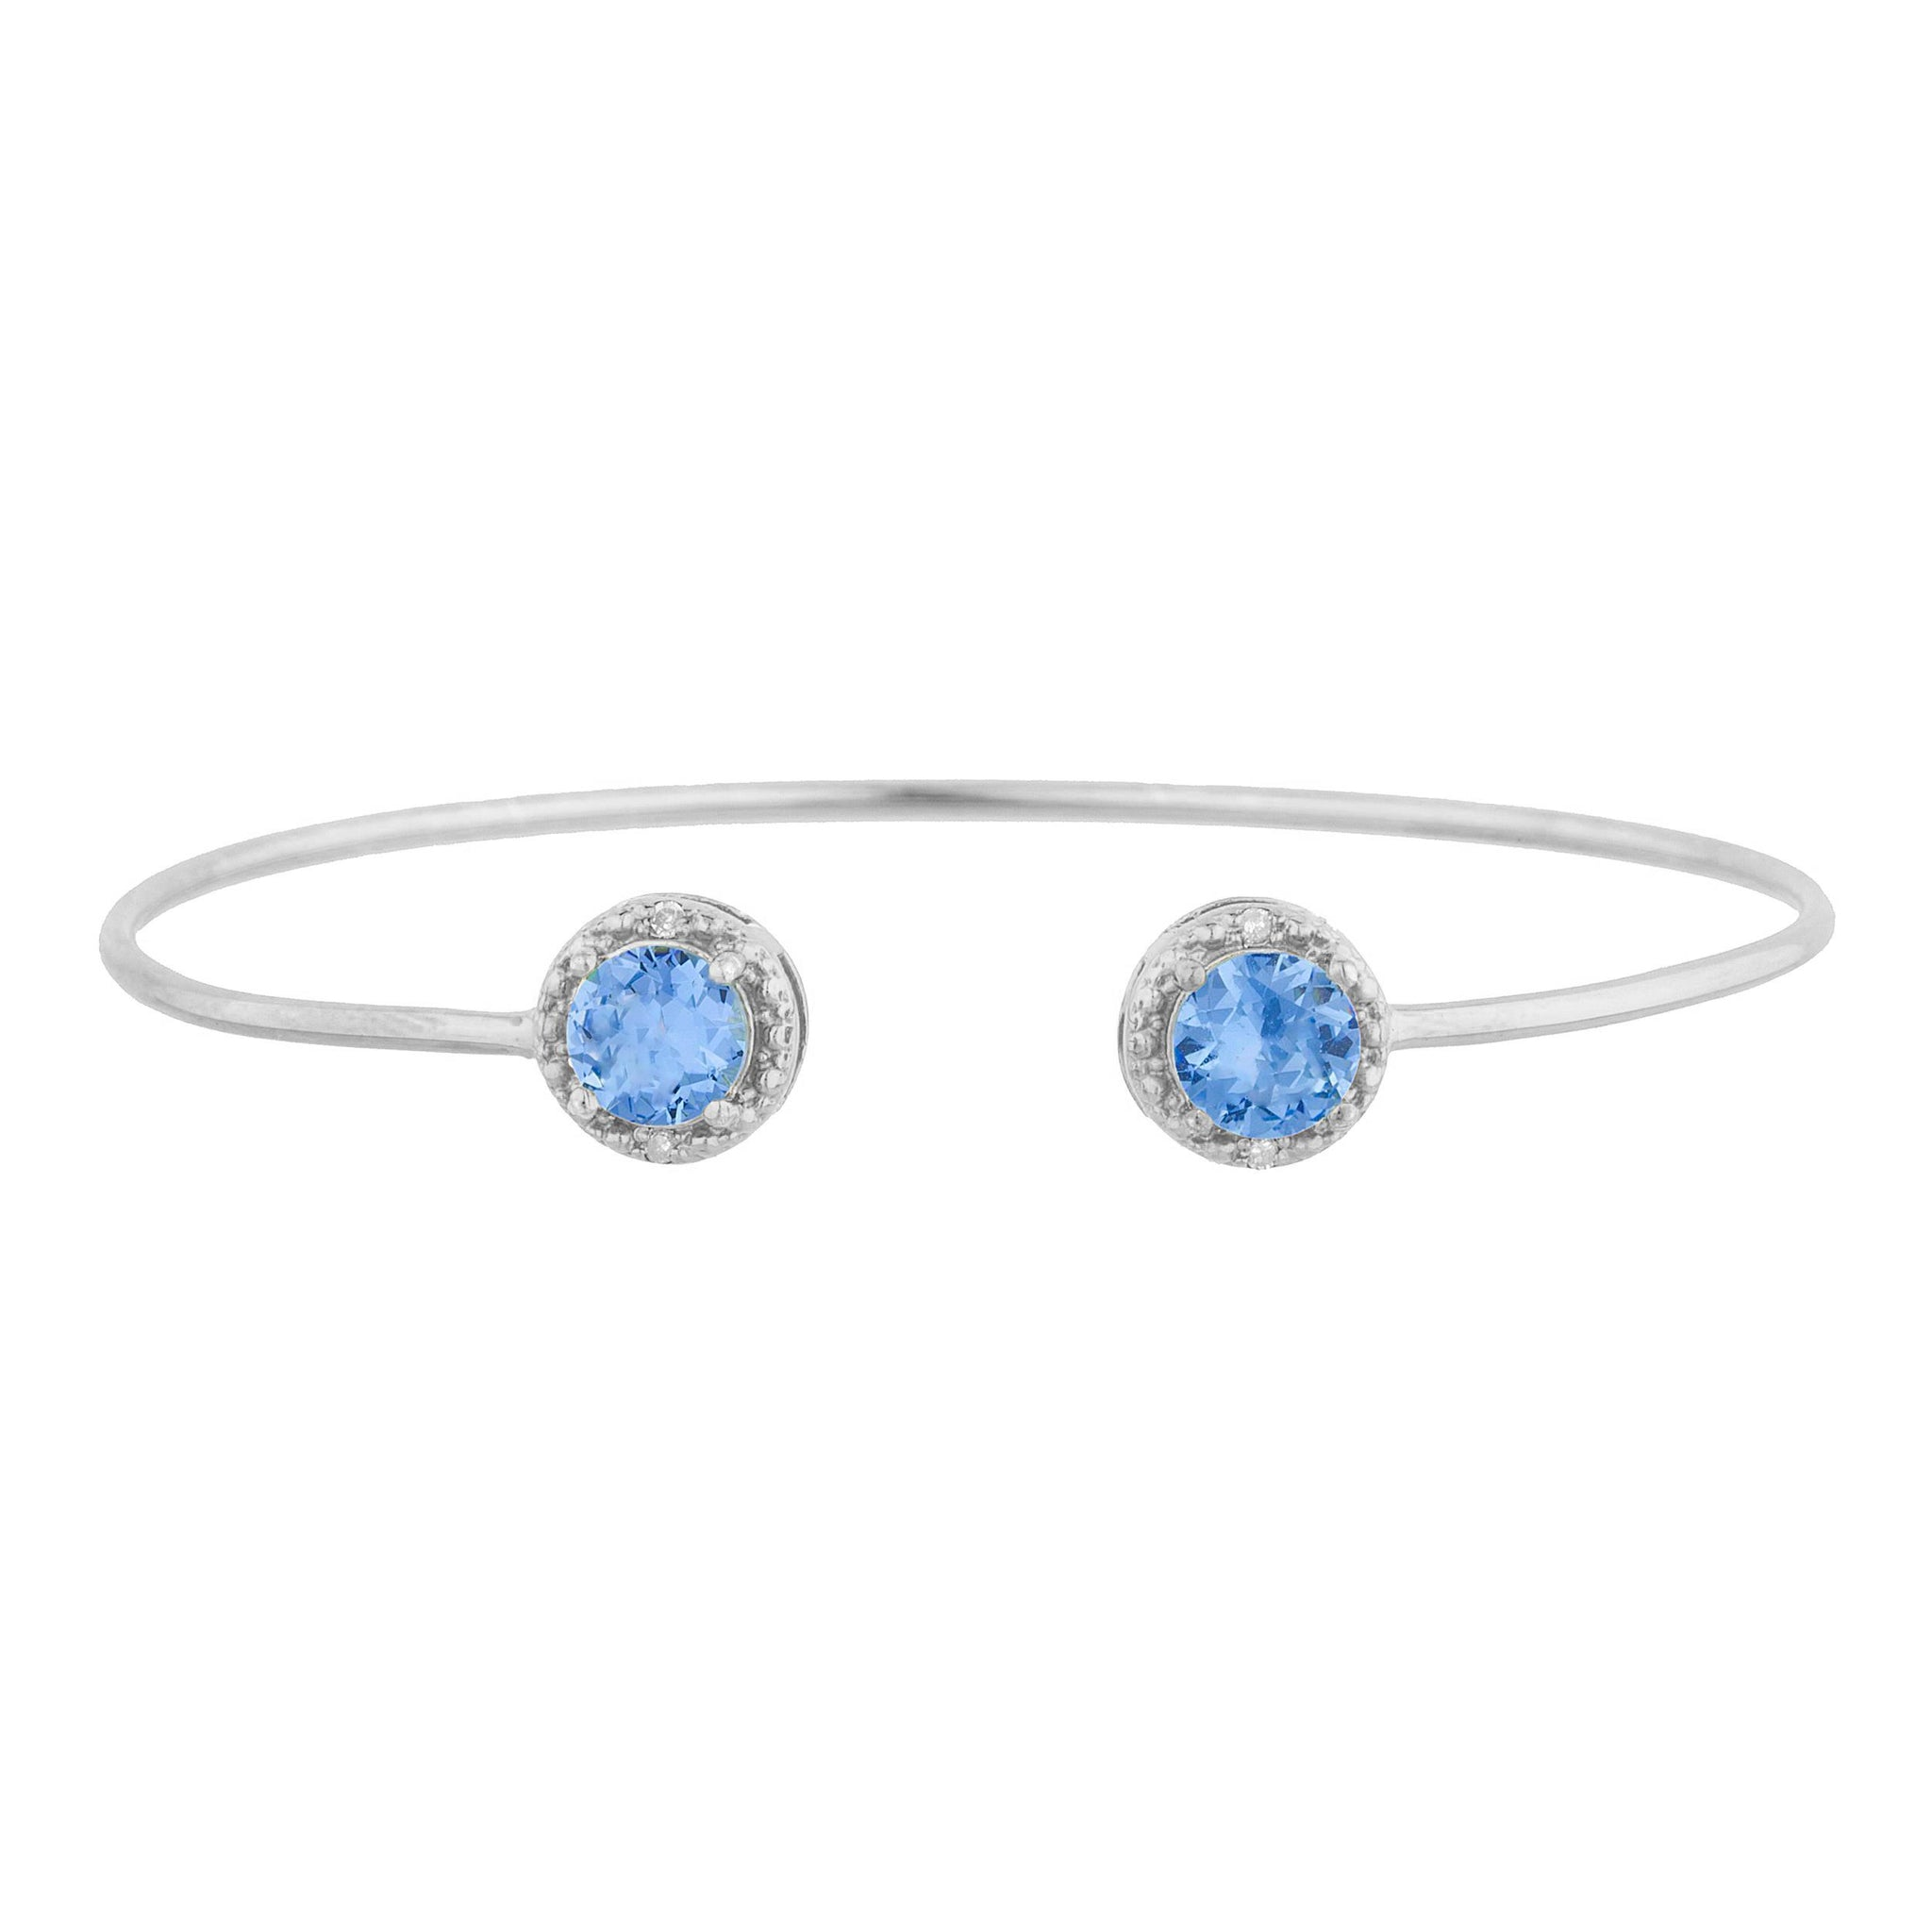 2 Ct Tanzanite & Diamond Round Bangle Bracelet .925 Sterling Silver